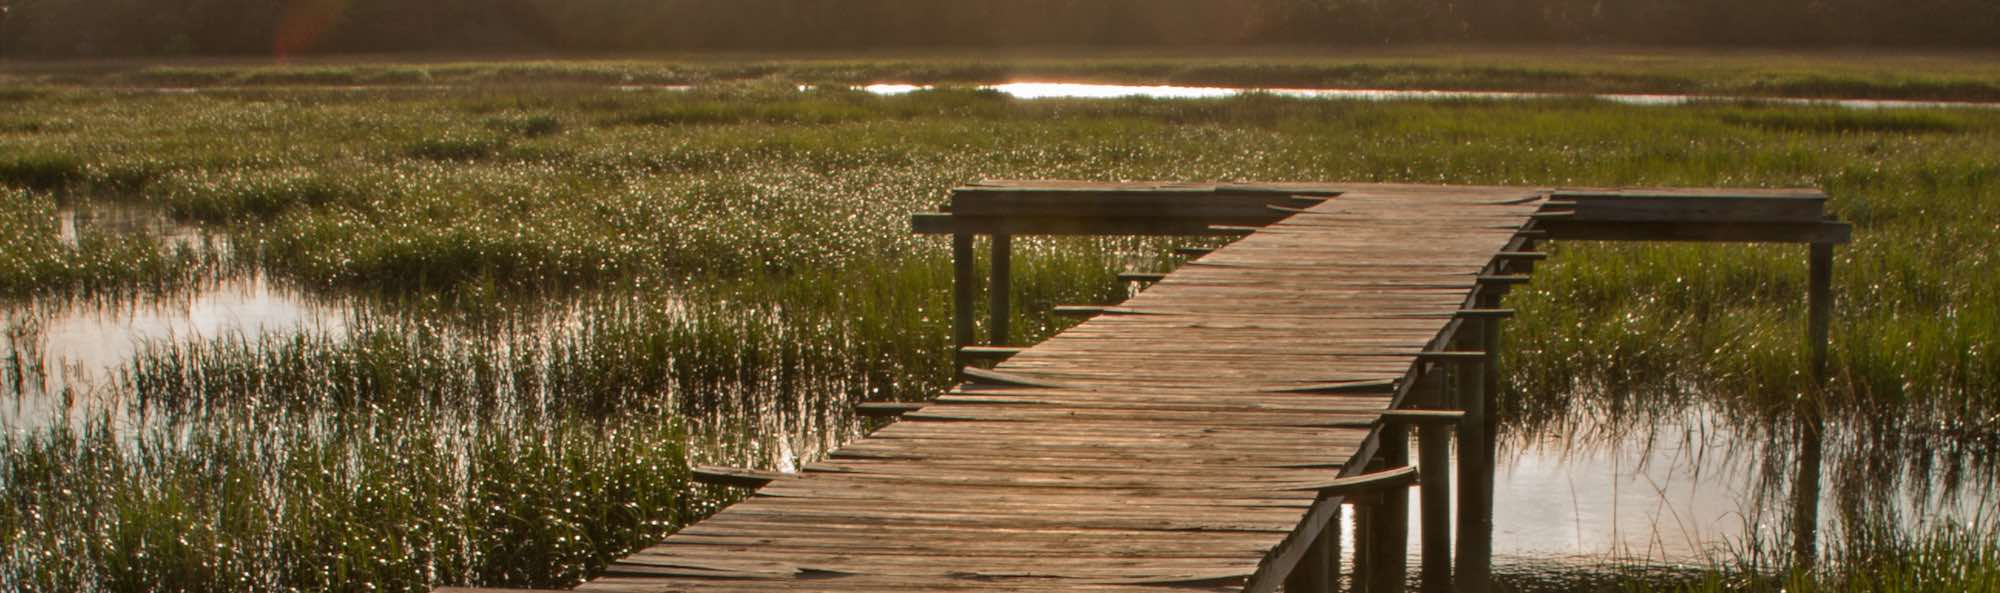 A wooden jetty over the marsh near Tybee Island, GA at sunset.